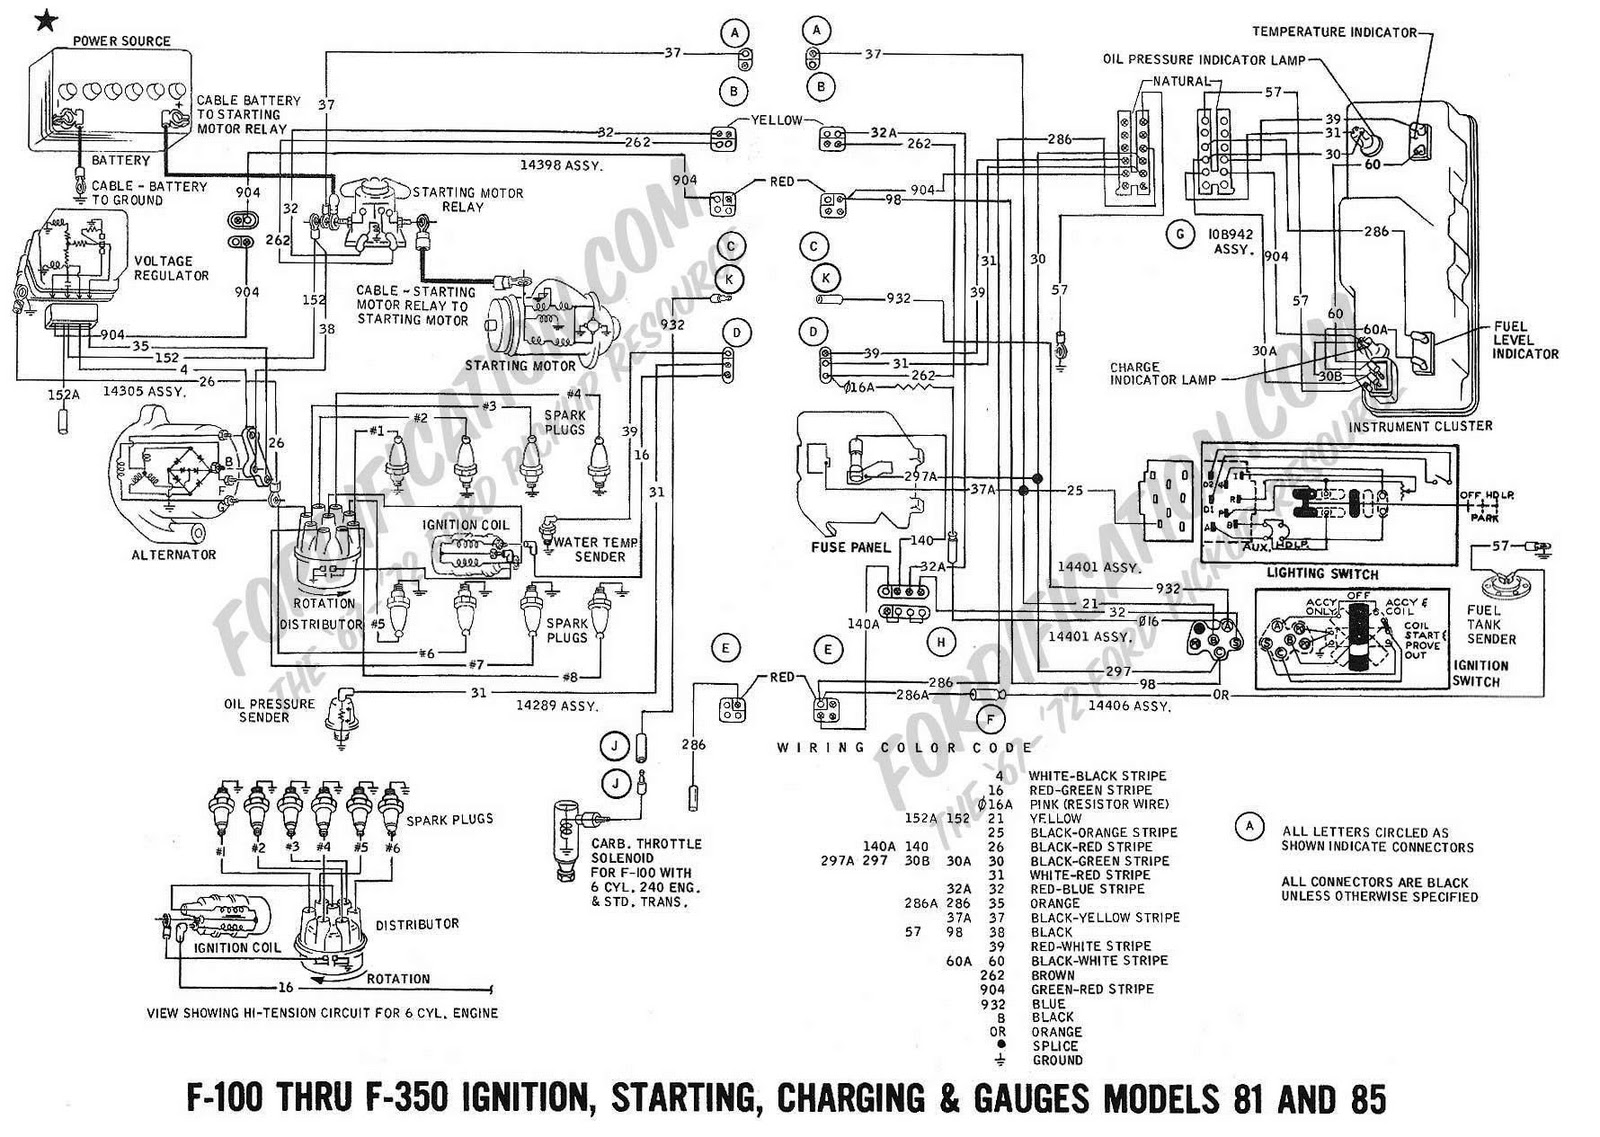 Superb 1968 Ford Falcon Wiring Diagram General Wiring Diagram Data Wiring Digital Resources Remcakbiperorg